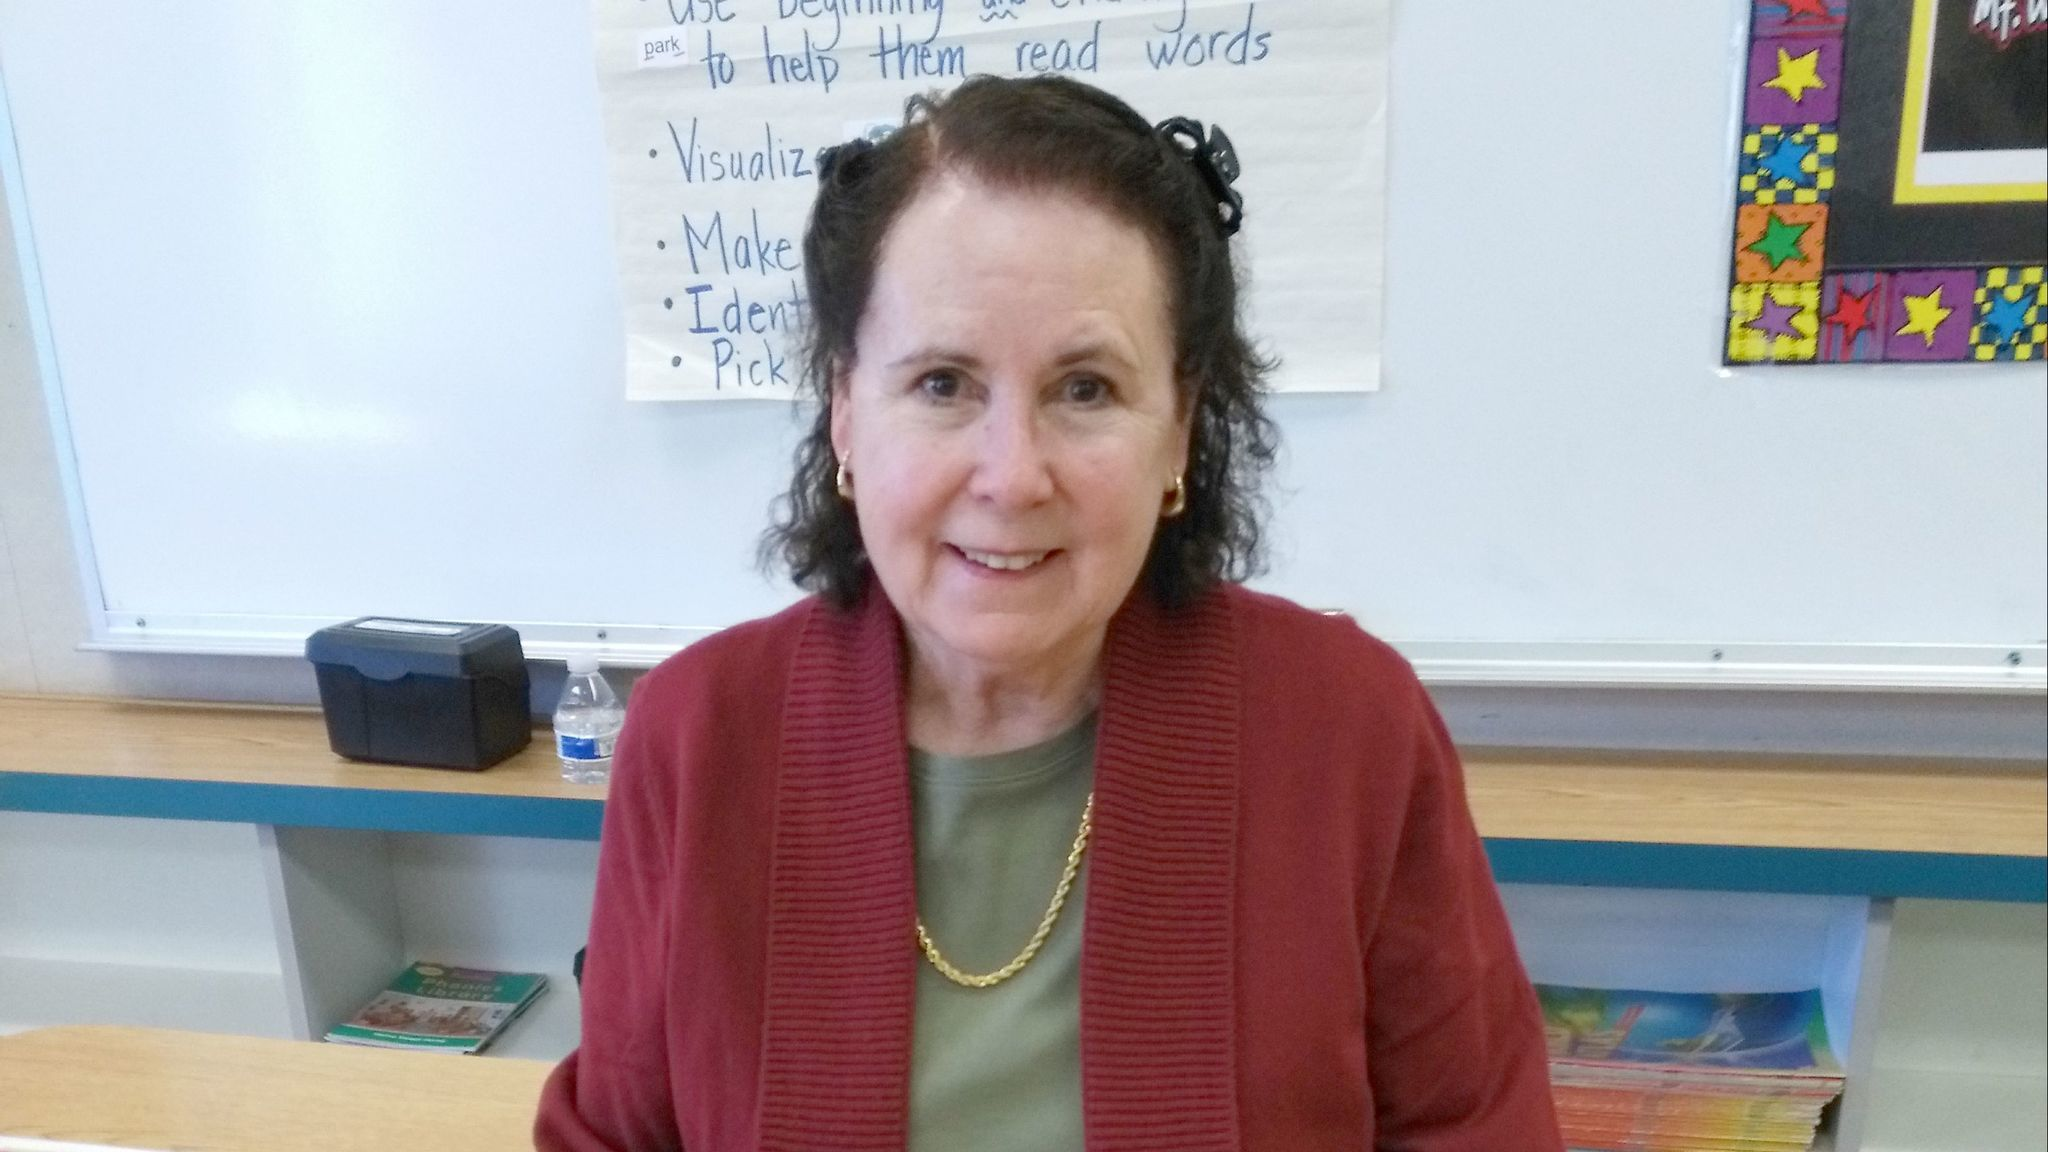 Retired teacher Leanne Plunkett continues guiding students as a volunteer and substitute teacher at Mt. Woodson Elementary School.